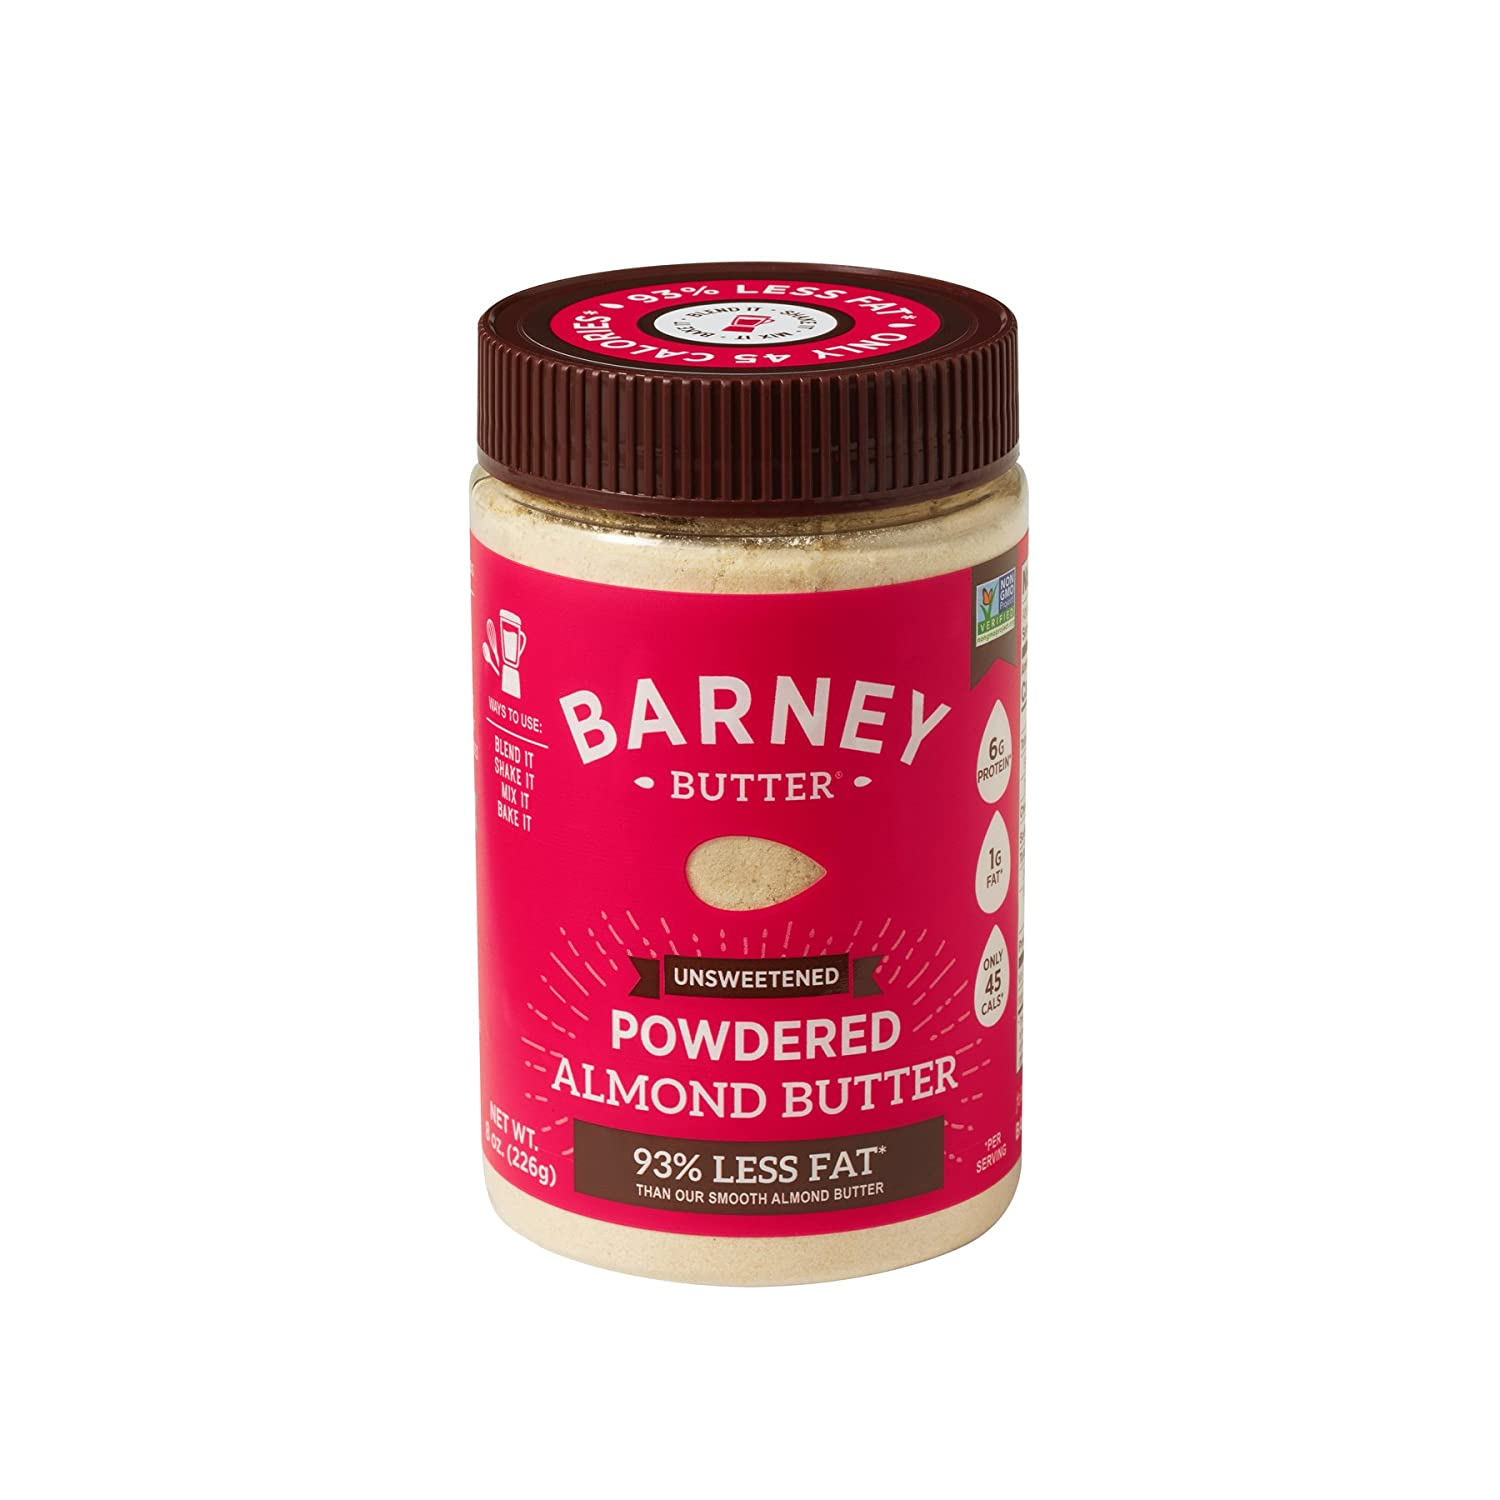 Amazon.com : Barney Butter Powdered Almond Butter, Chocolate, 8 Ounce : Grocery & Gourmet Food